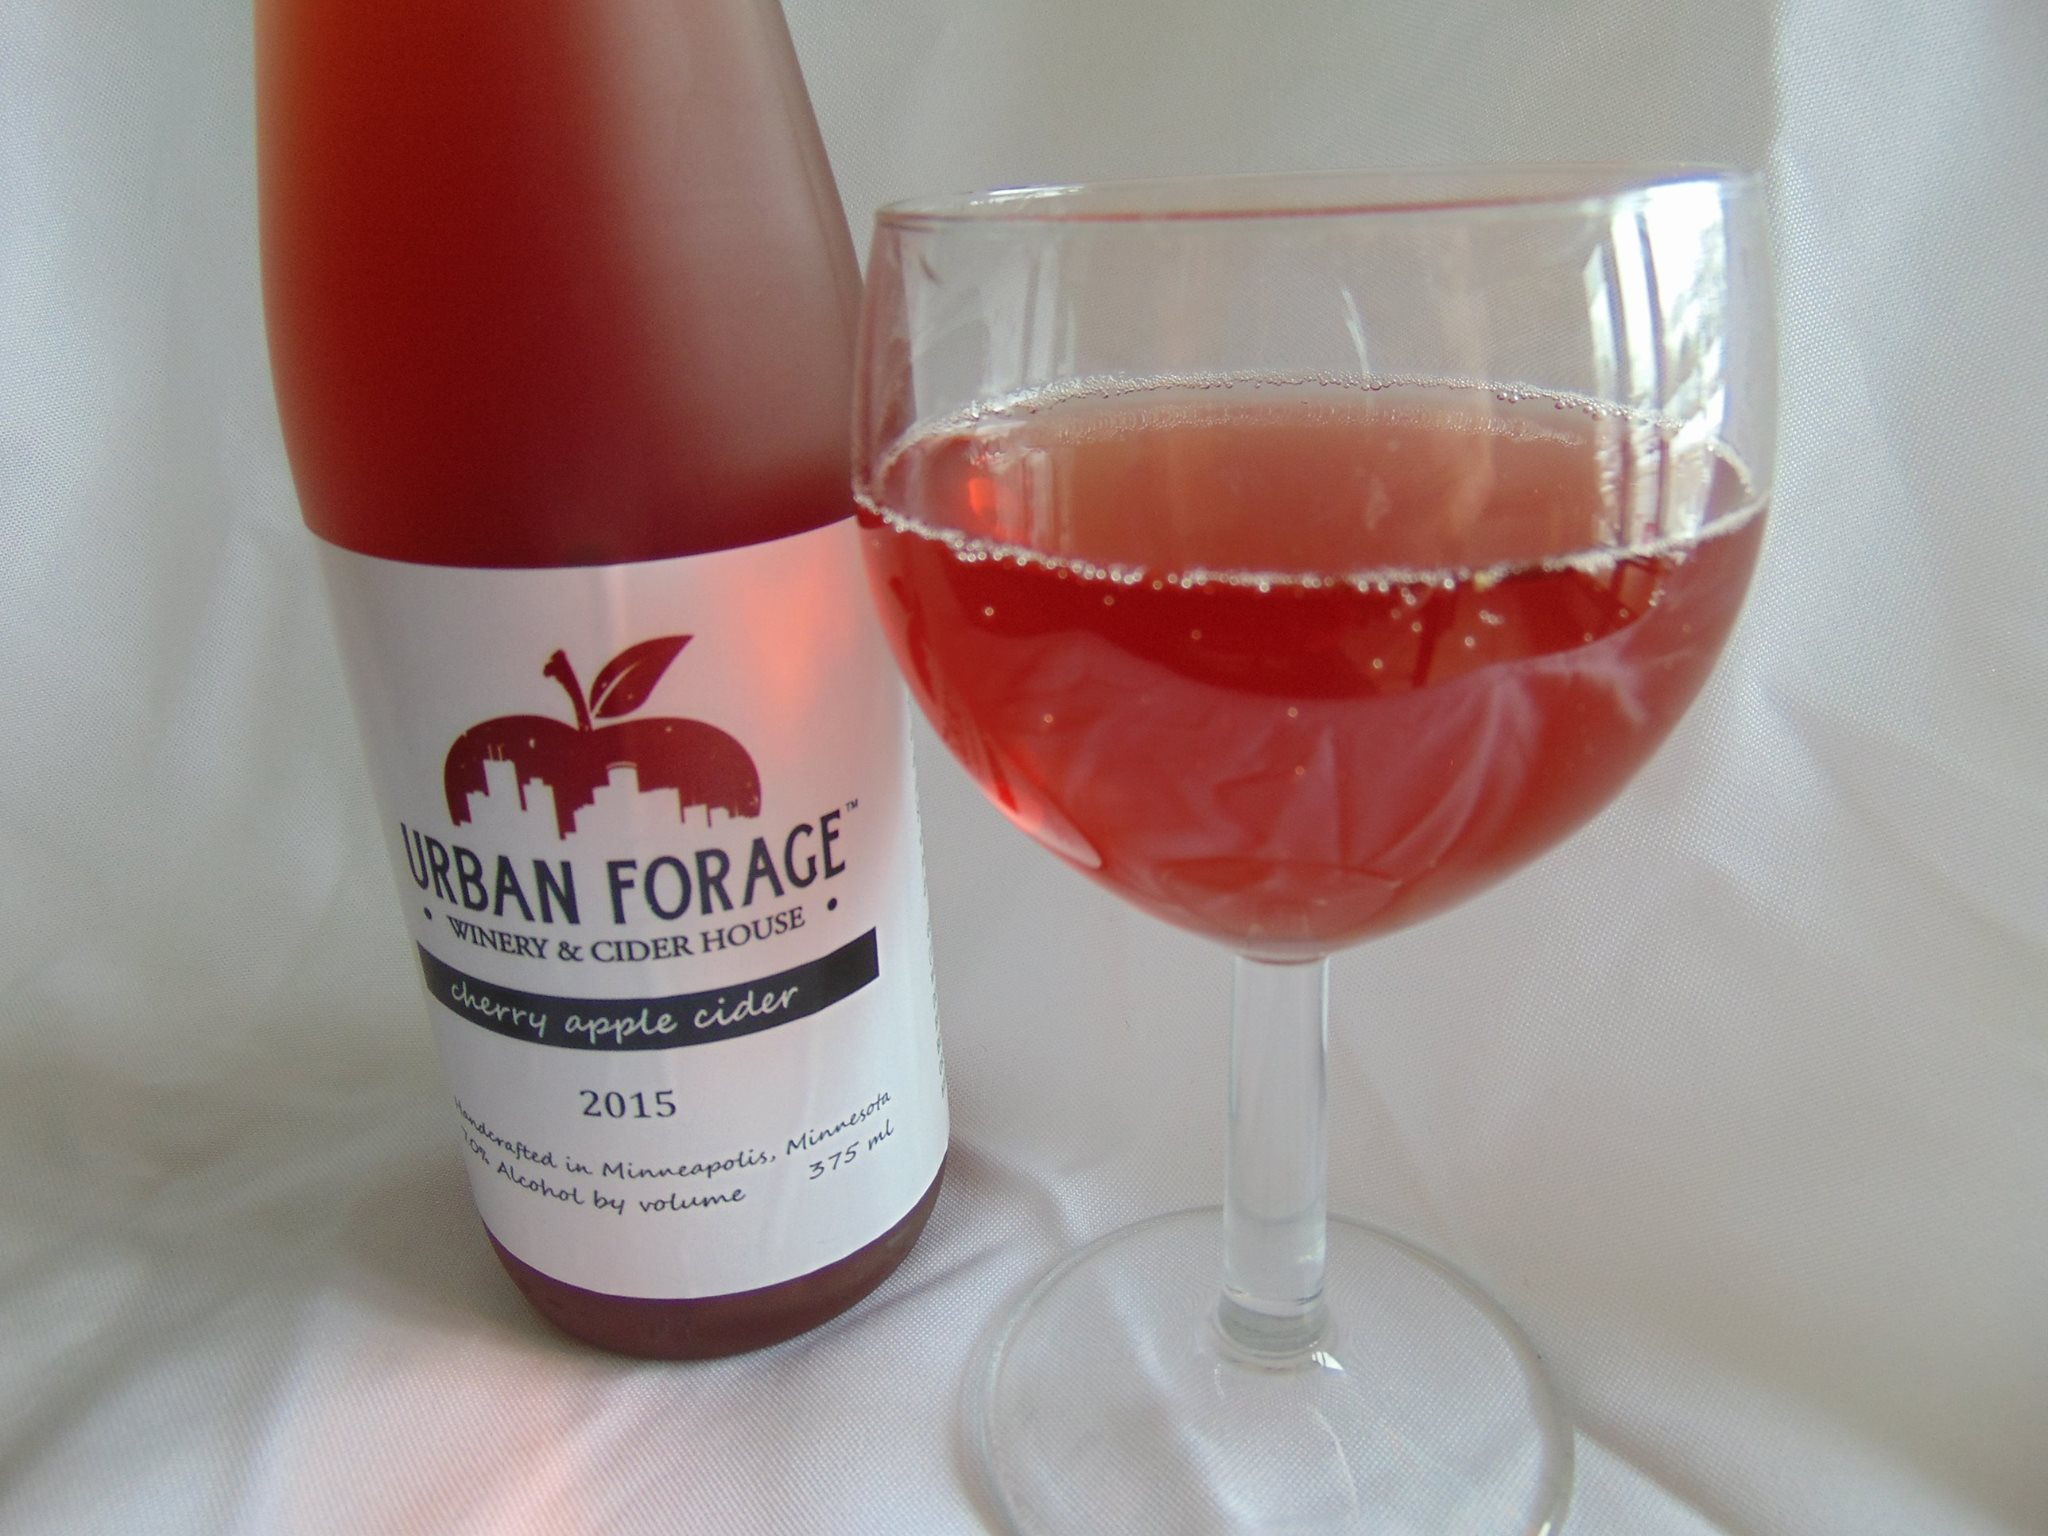 Urban Forage Winery and Cider House's Cherry Apple Cider // Photo courtesy Urban Forage Winery and Cider House Facebook